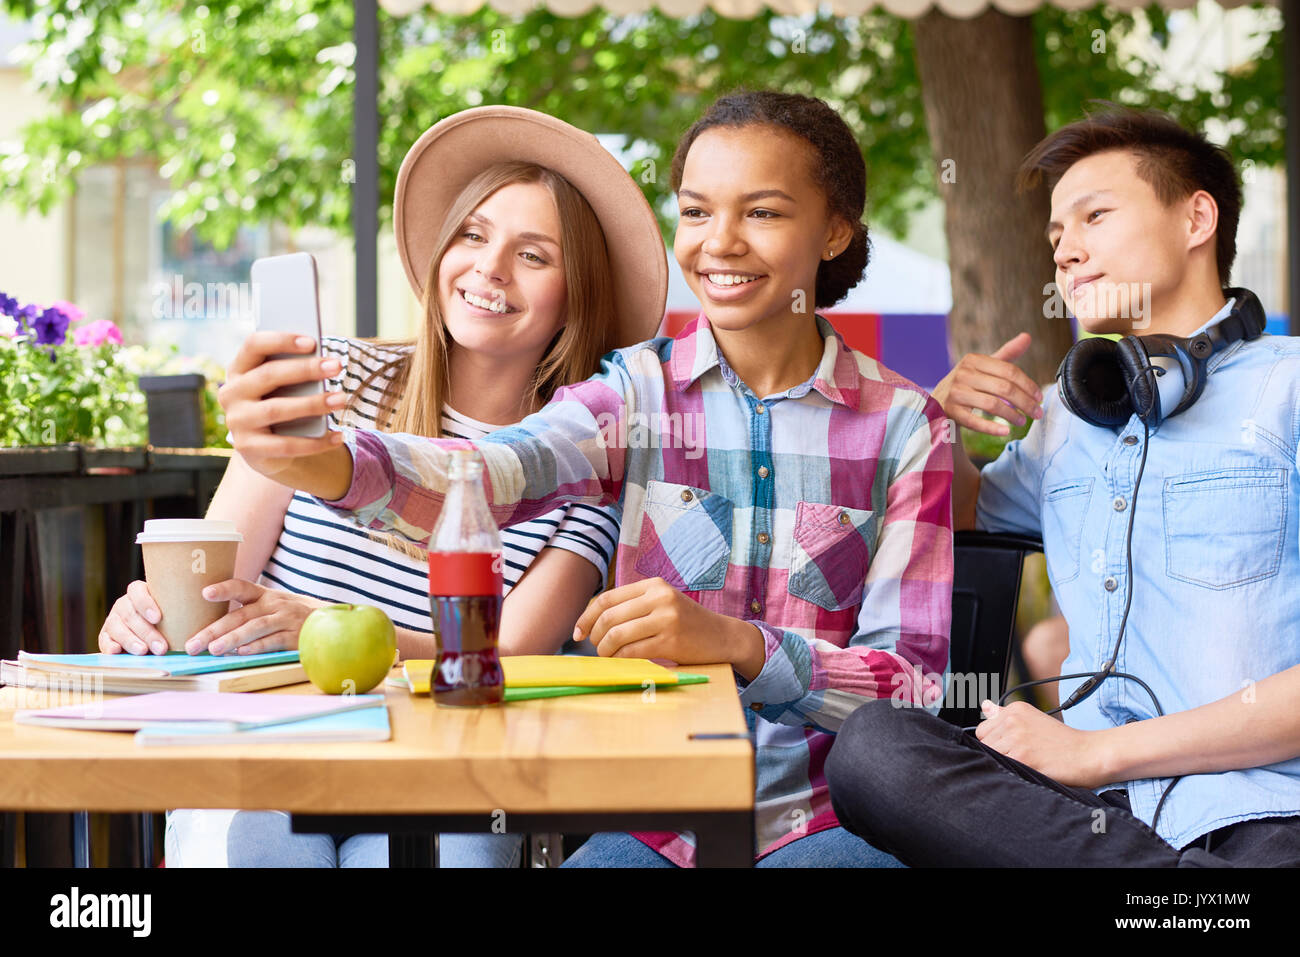 Young People Taking Selfie in Cafe - Stock Image